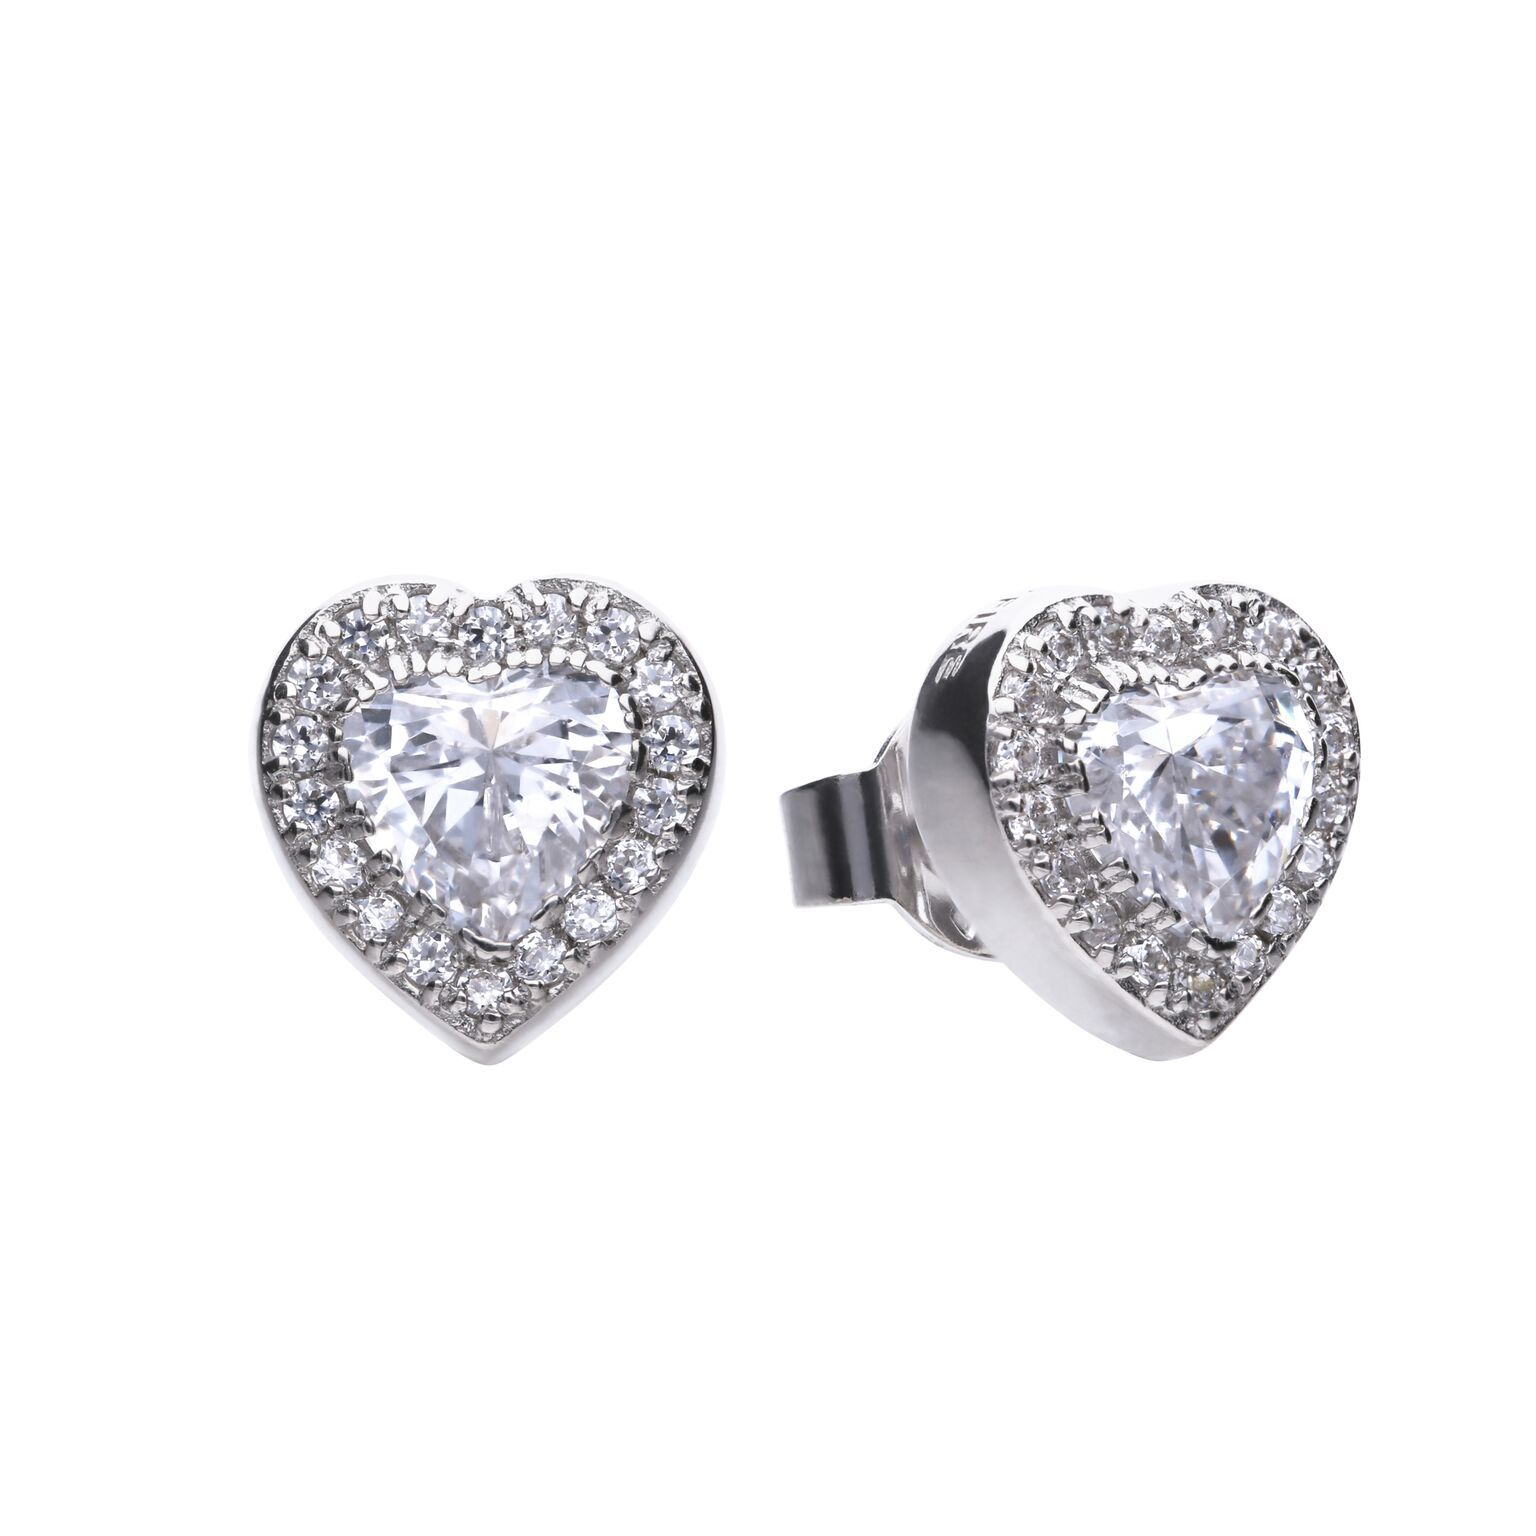 69564 - diamonfire CZ Heart shaped Stud Earrings in Sterling Silver